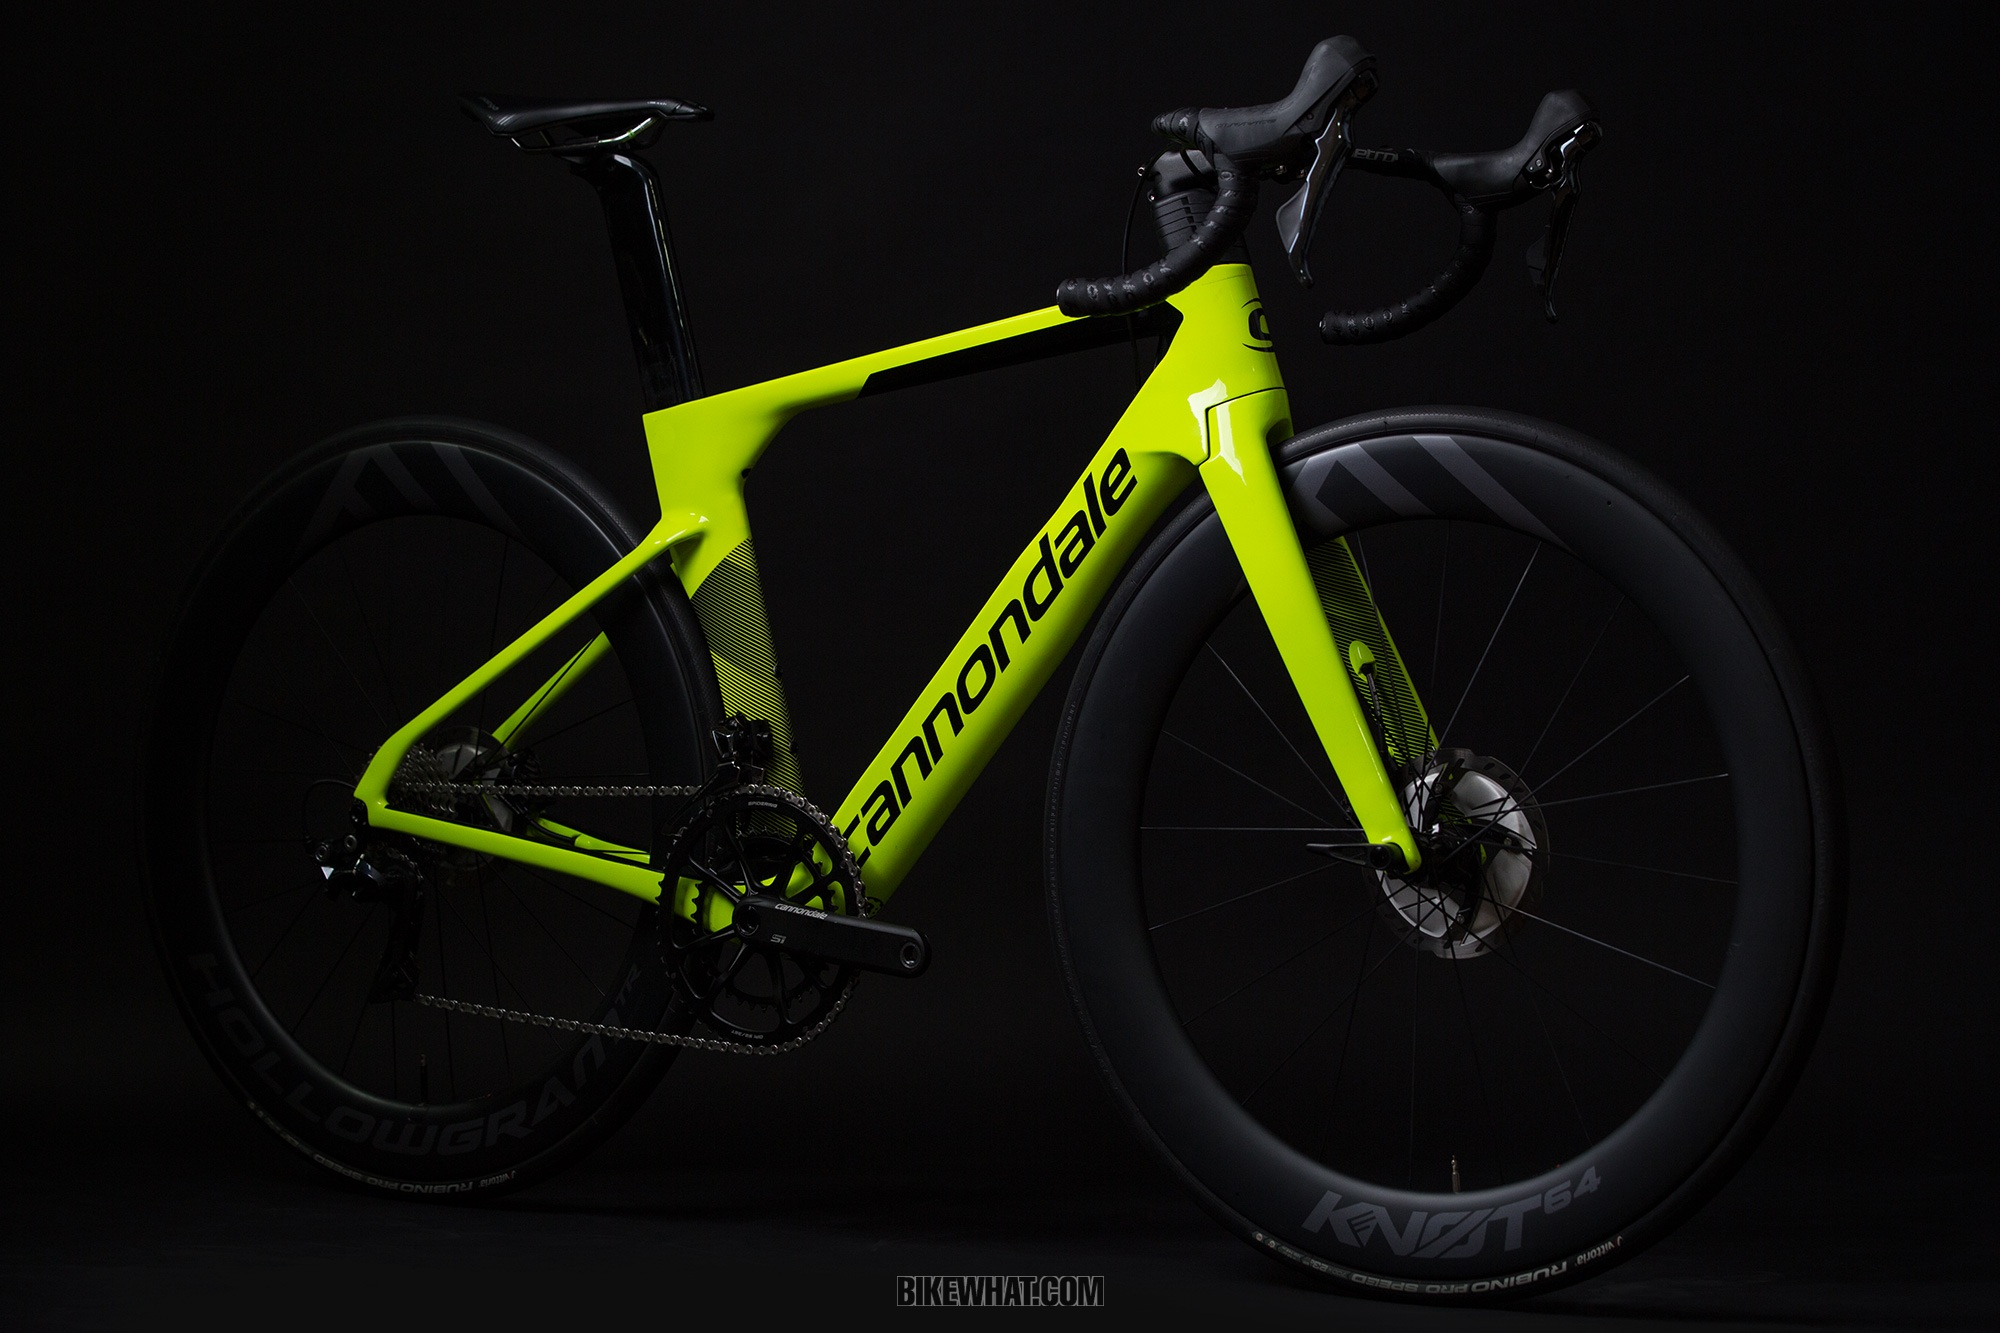 testride_cannondale_systemsix_08.jpg